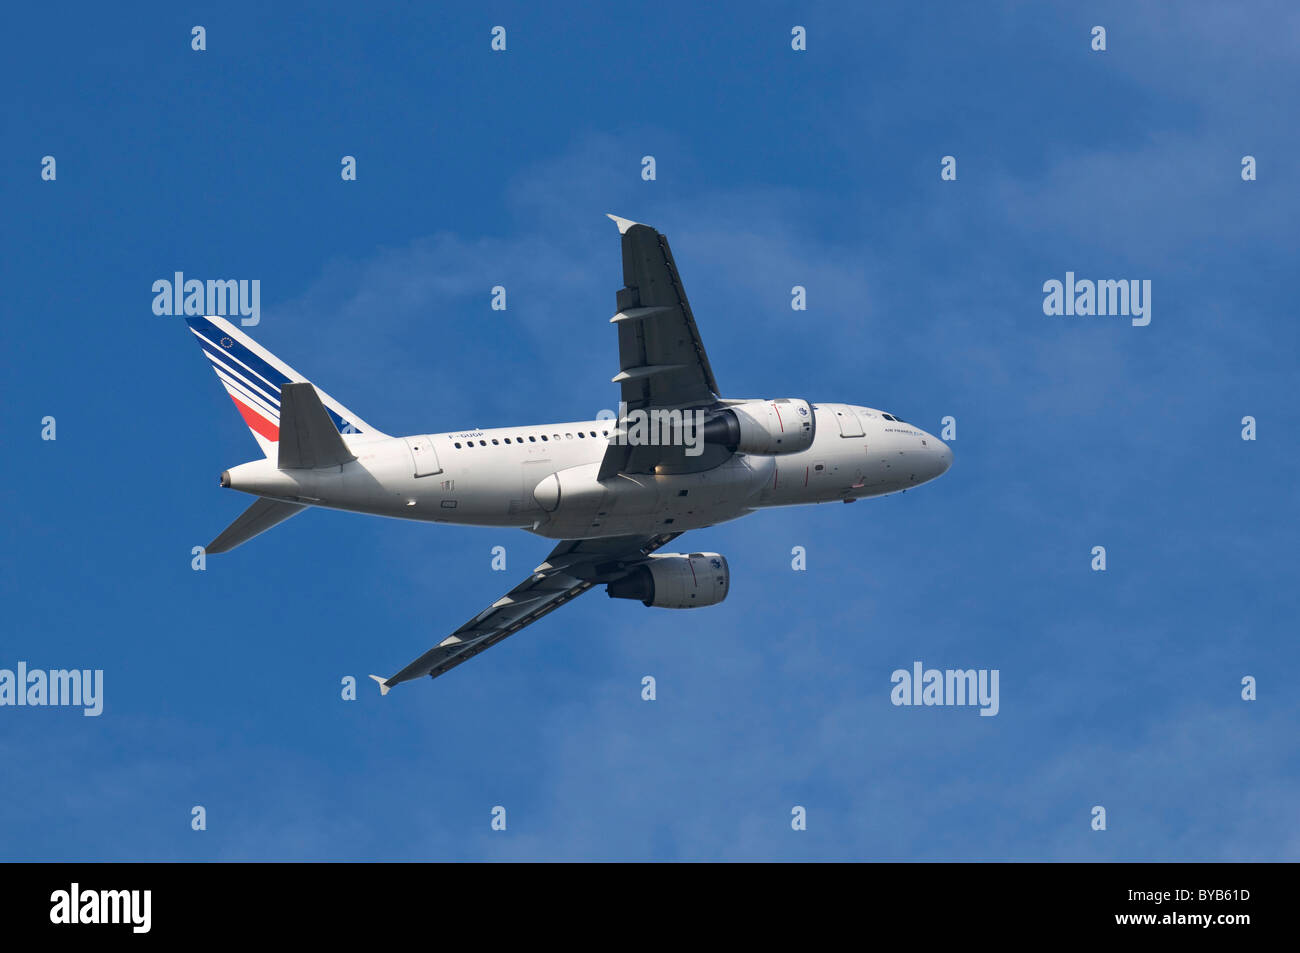 A 318-111 of Air France KLM in ascent - Stock Image